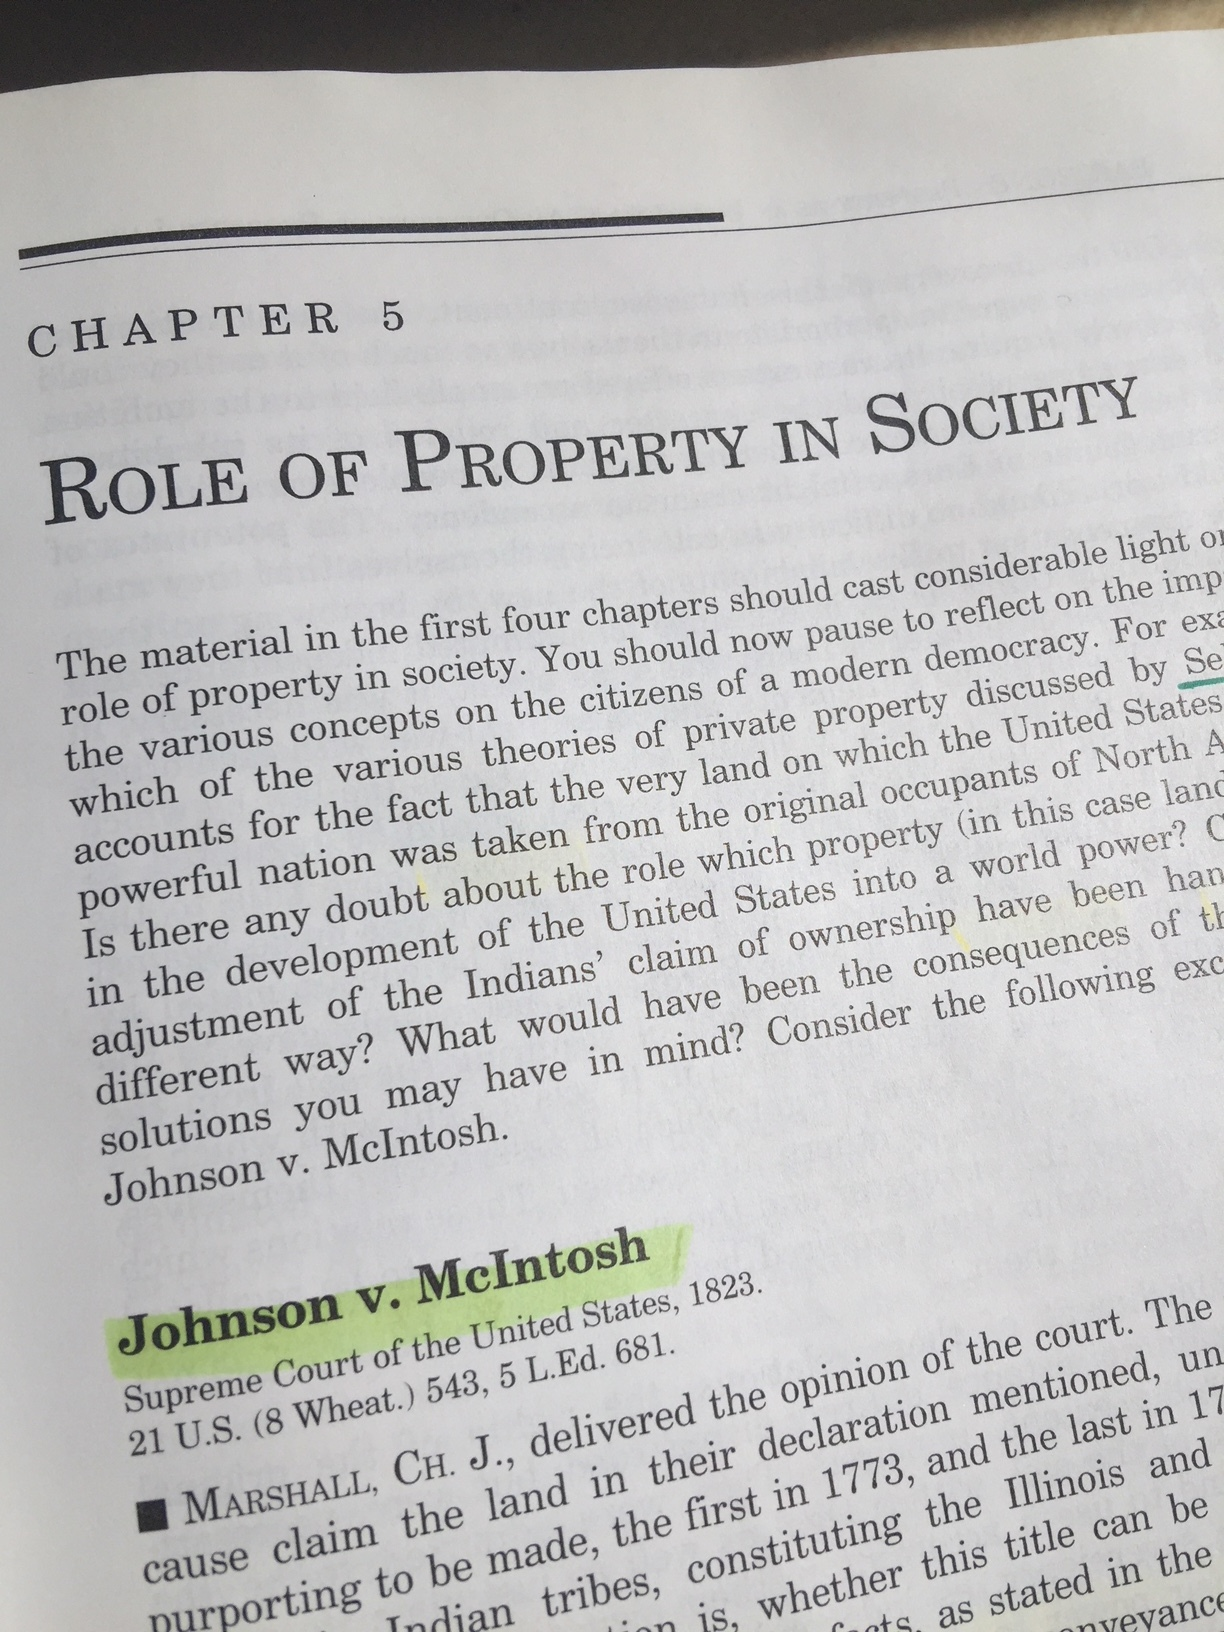 The seminal property case in the U.S. That's why we read and study it.